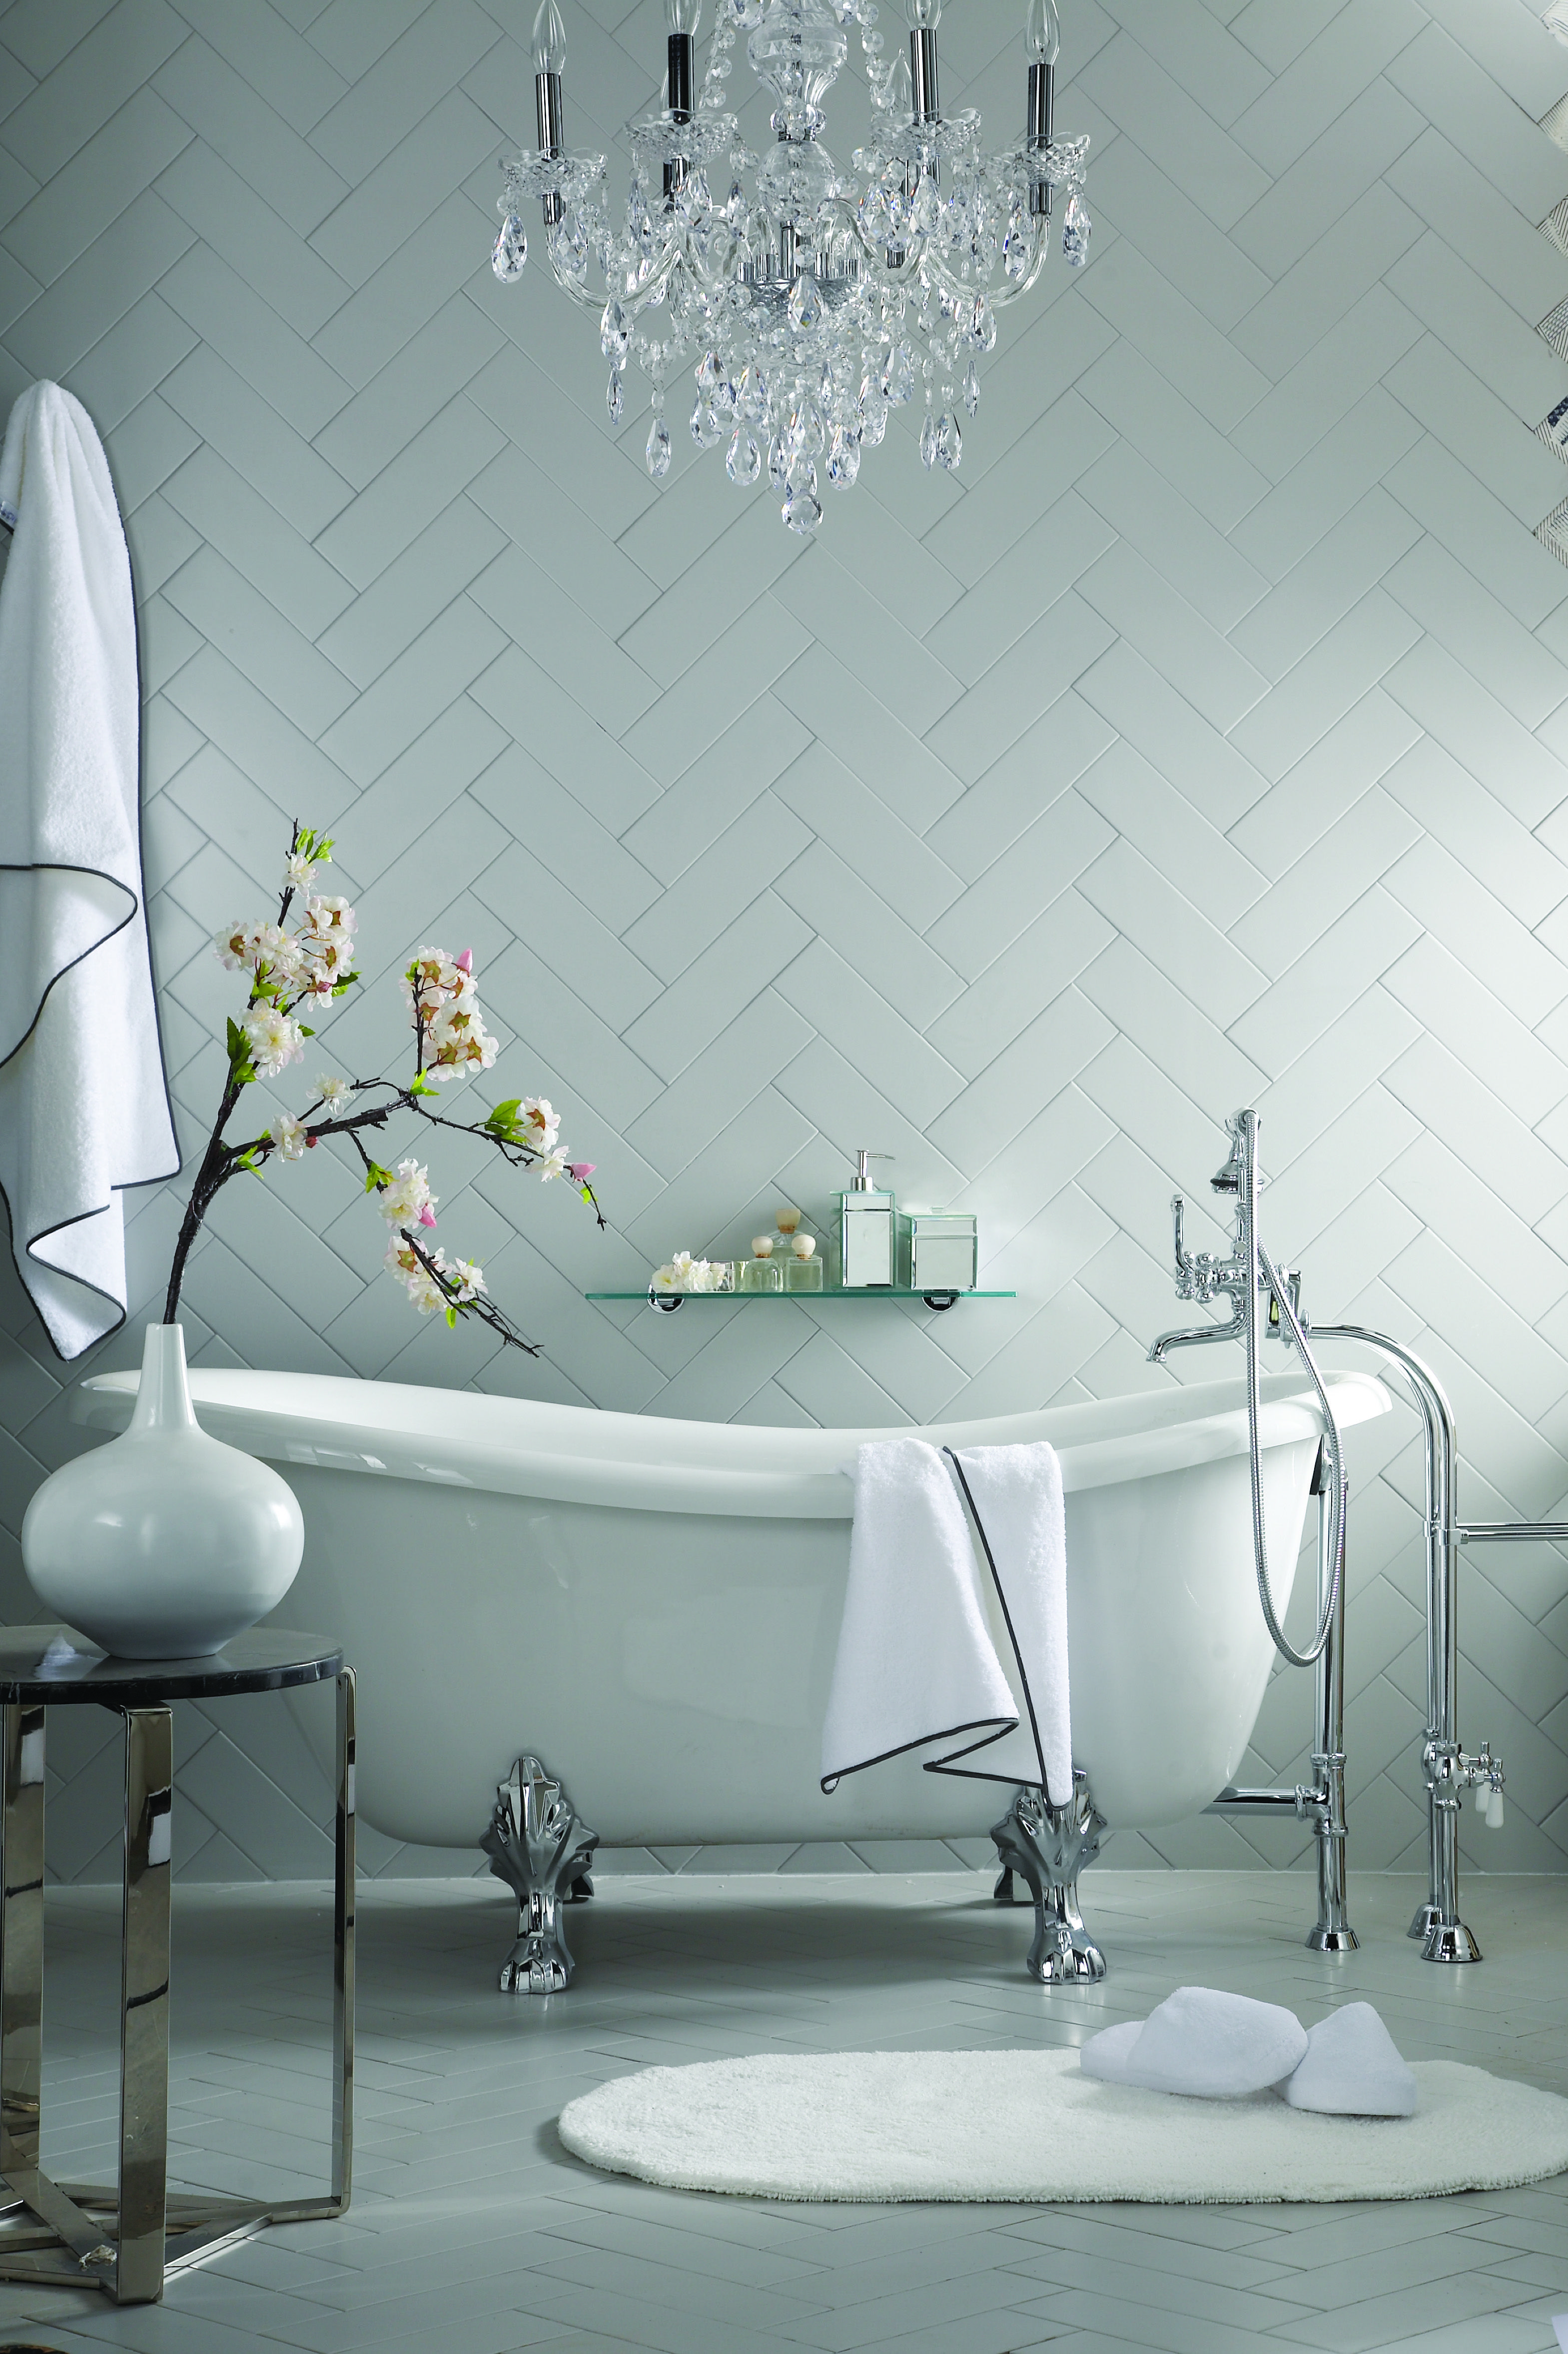 Turn your bathroom into a luxurious getaway with a dramatic soaker ...